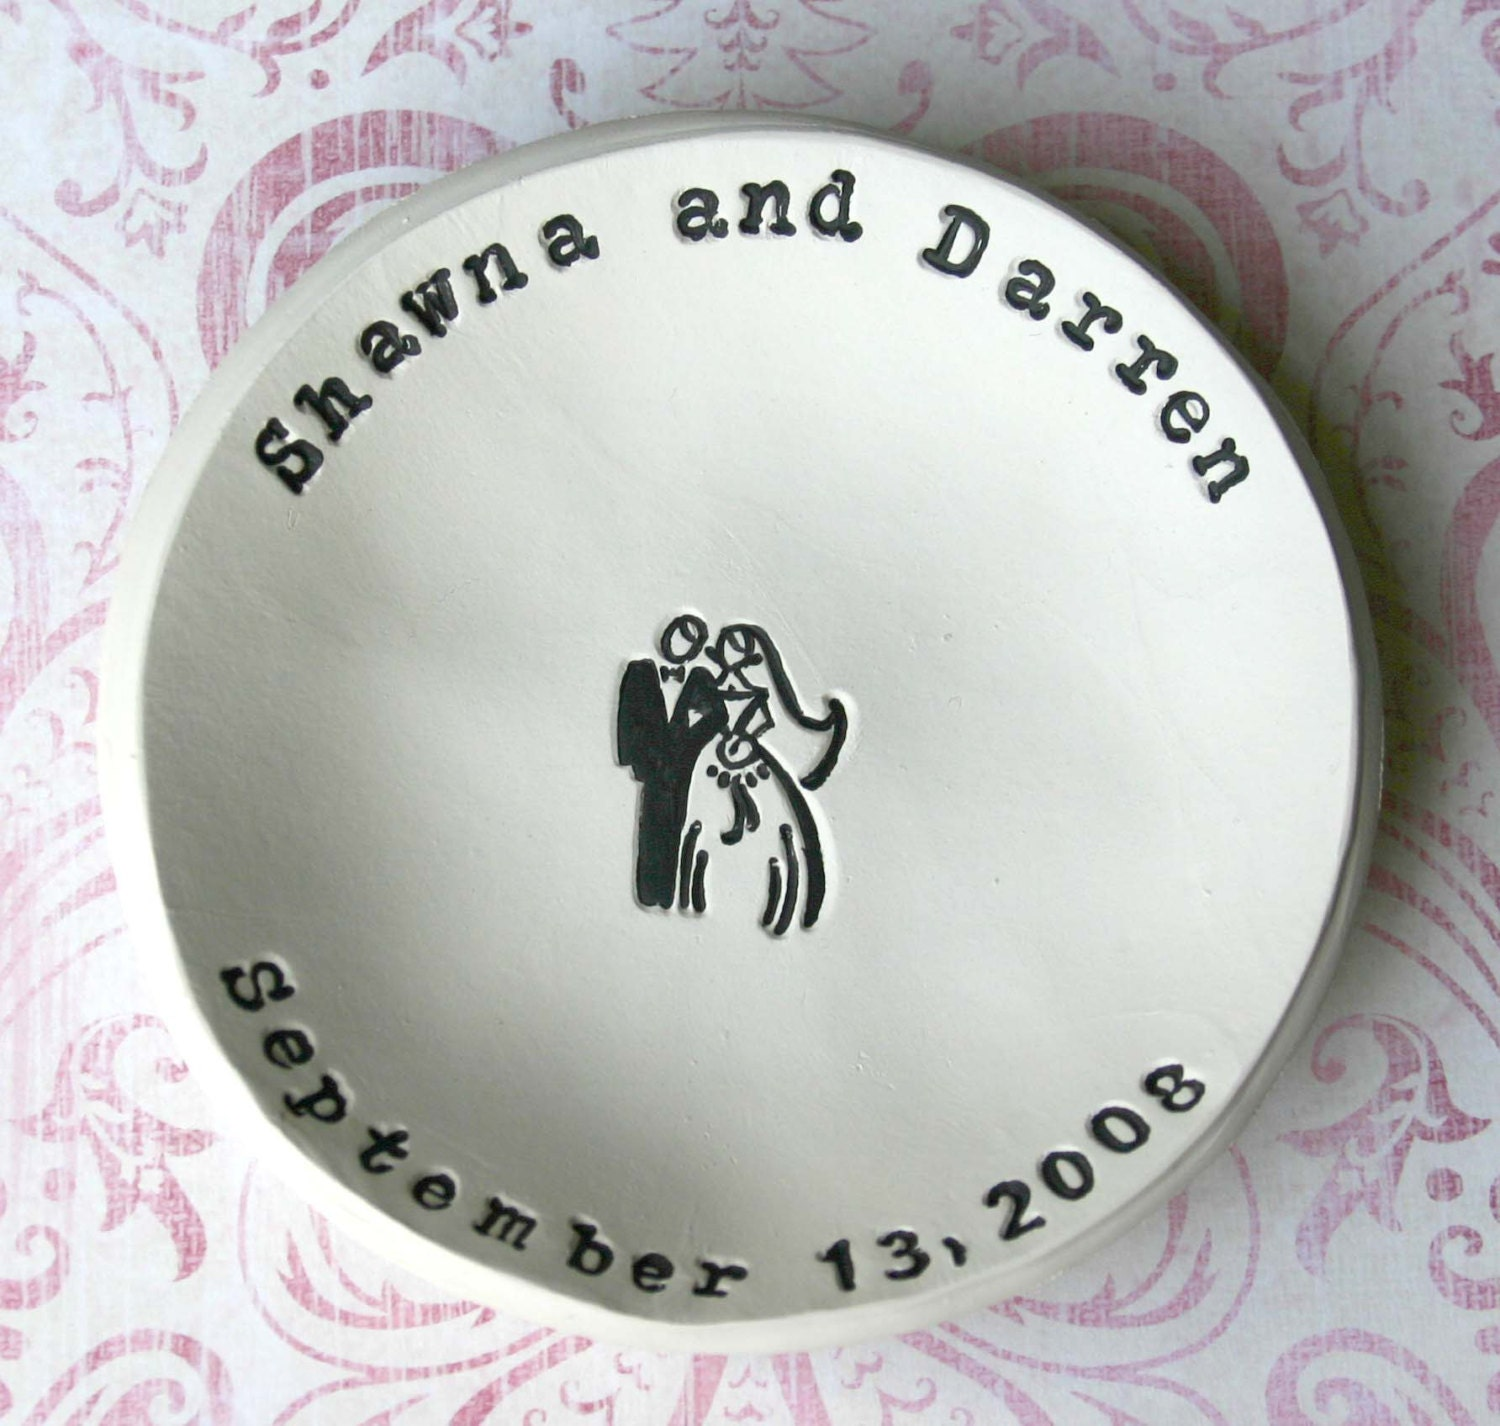 Personalized Wedding Gift: Bride and Groom Bowl Bridal Shower